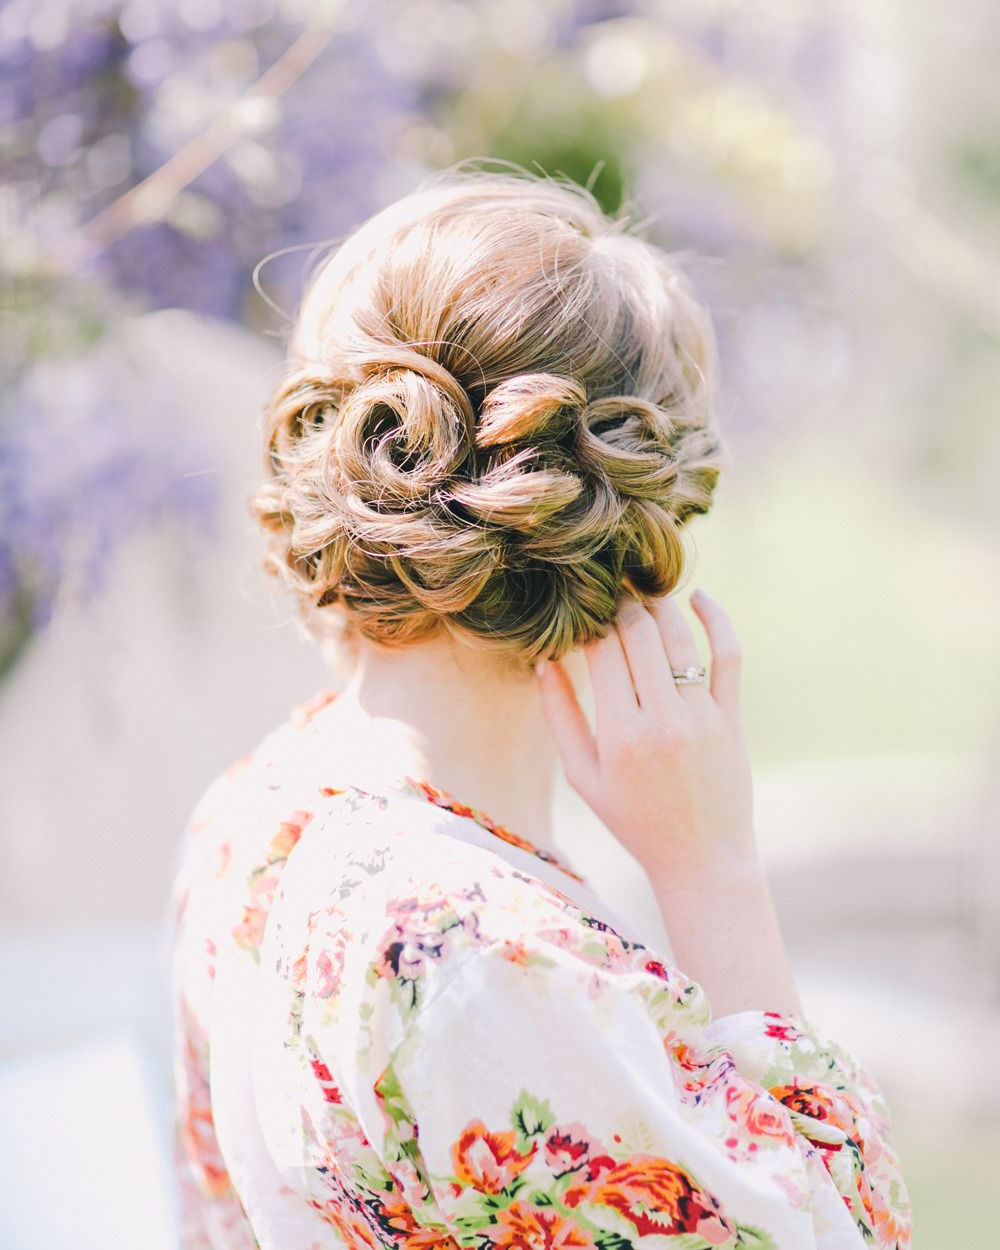 Bridal Hairstyles (View 6 of 20)